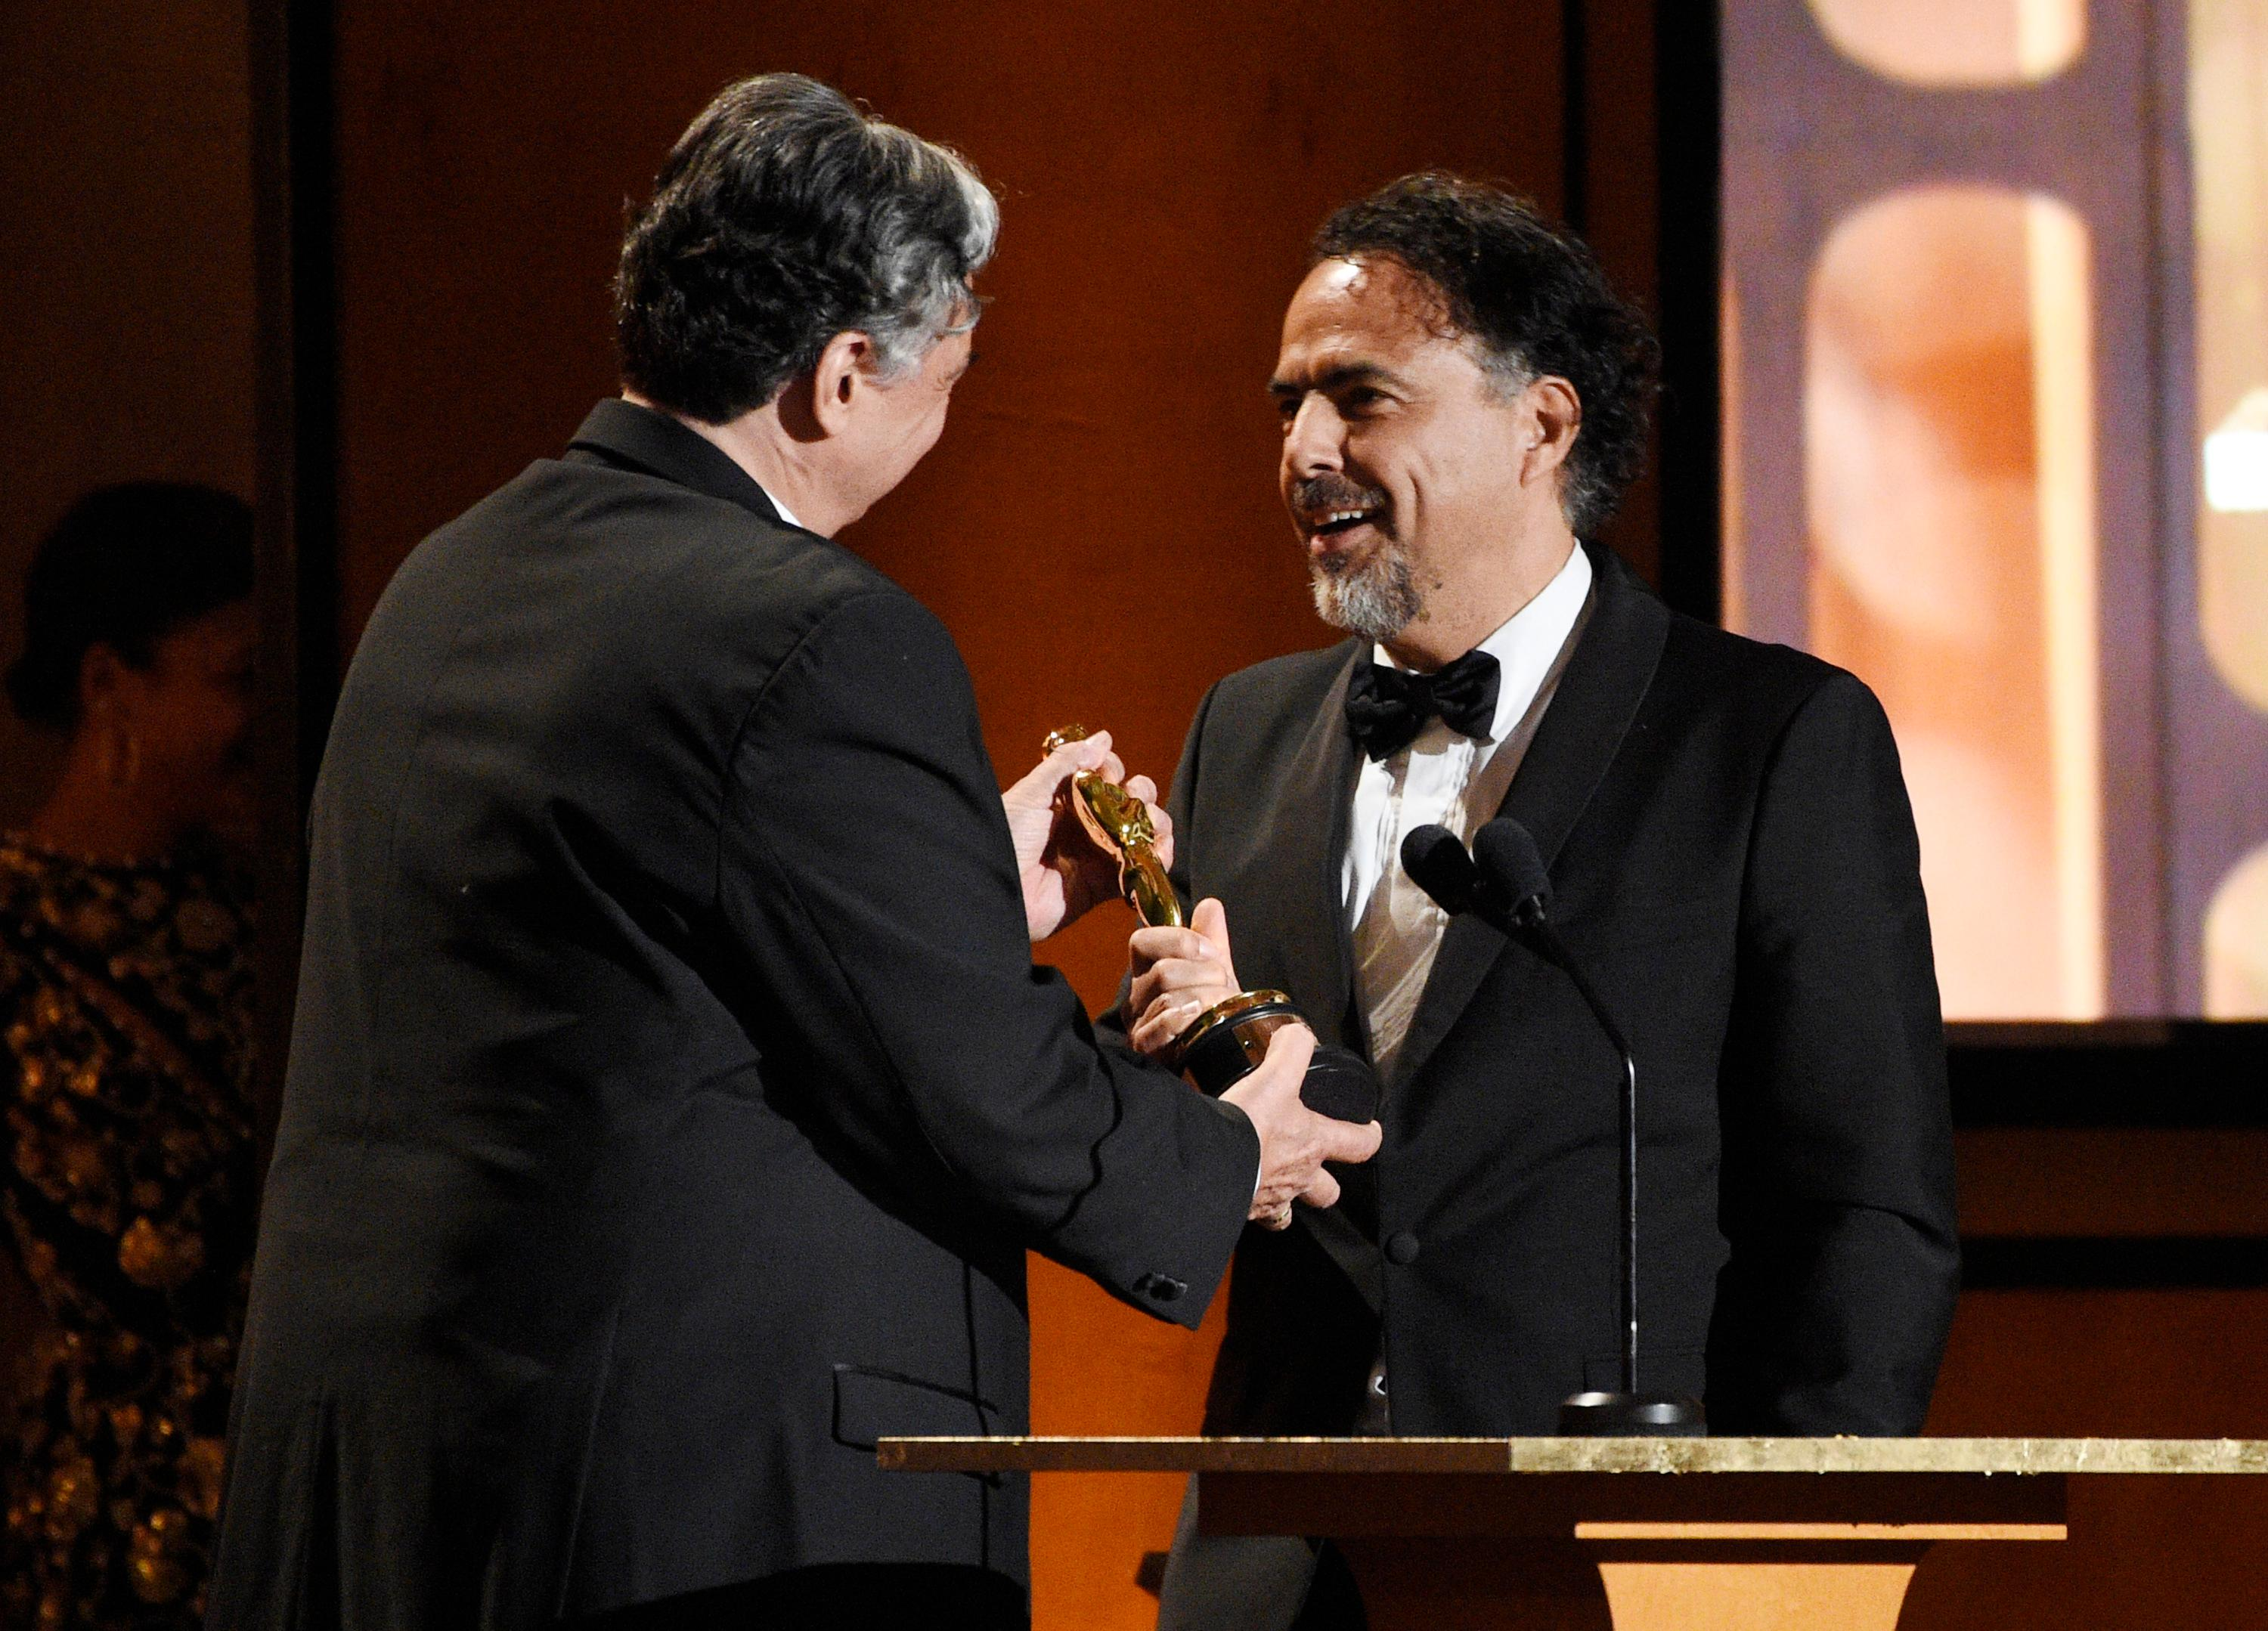 "Mexican director Alejandro Gonzalez Inarritu, right, accepts a Special Award Oscar from presenter Gregory Nava for his virtual reality installation ""Carne y Arena (Virtually present, Physically invisible)"" at the 2017 Governors Awards at The Ray Dolby Ballroom on Saturday, Nov. 11, 2017, in Los Angeles. (Photo by Chris Pizzello/Invision/AP)"